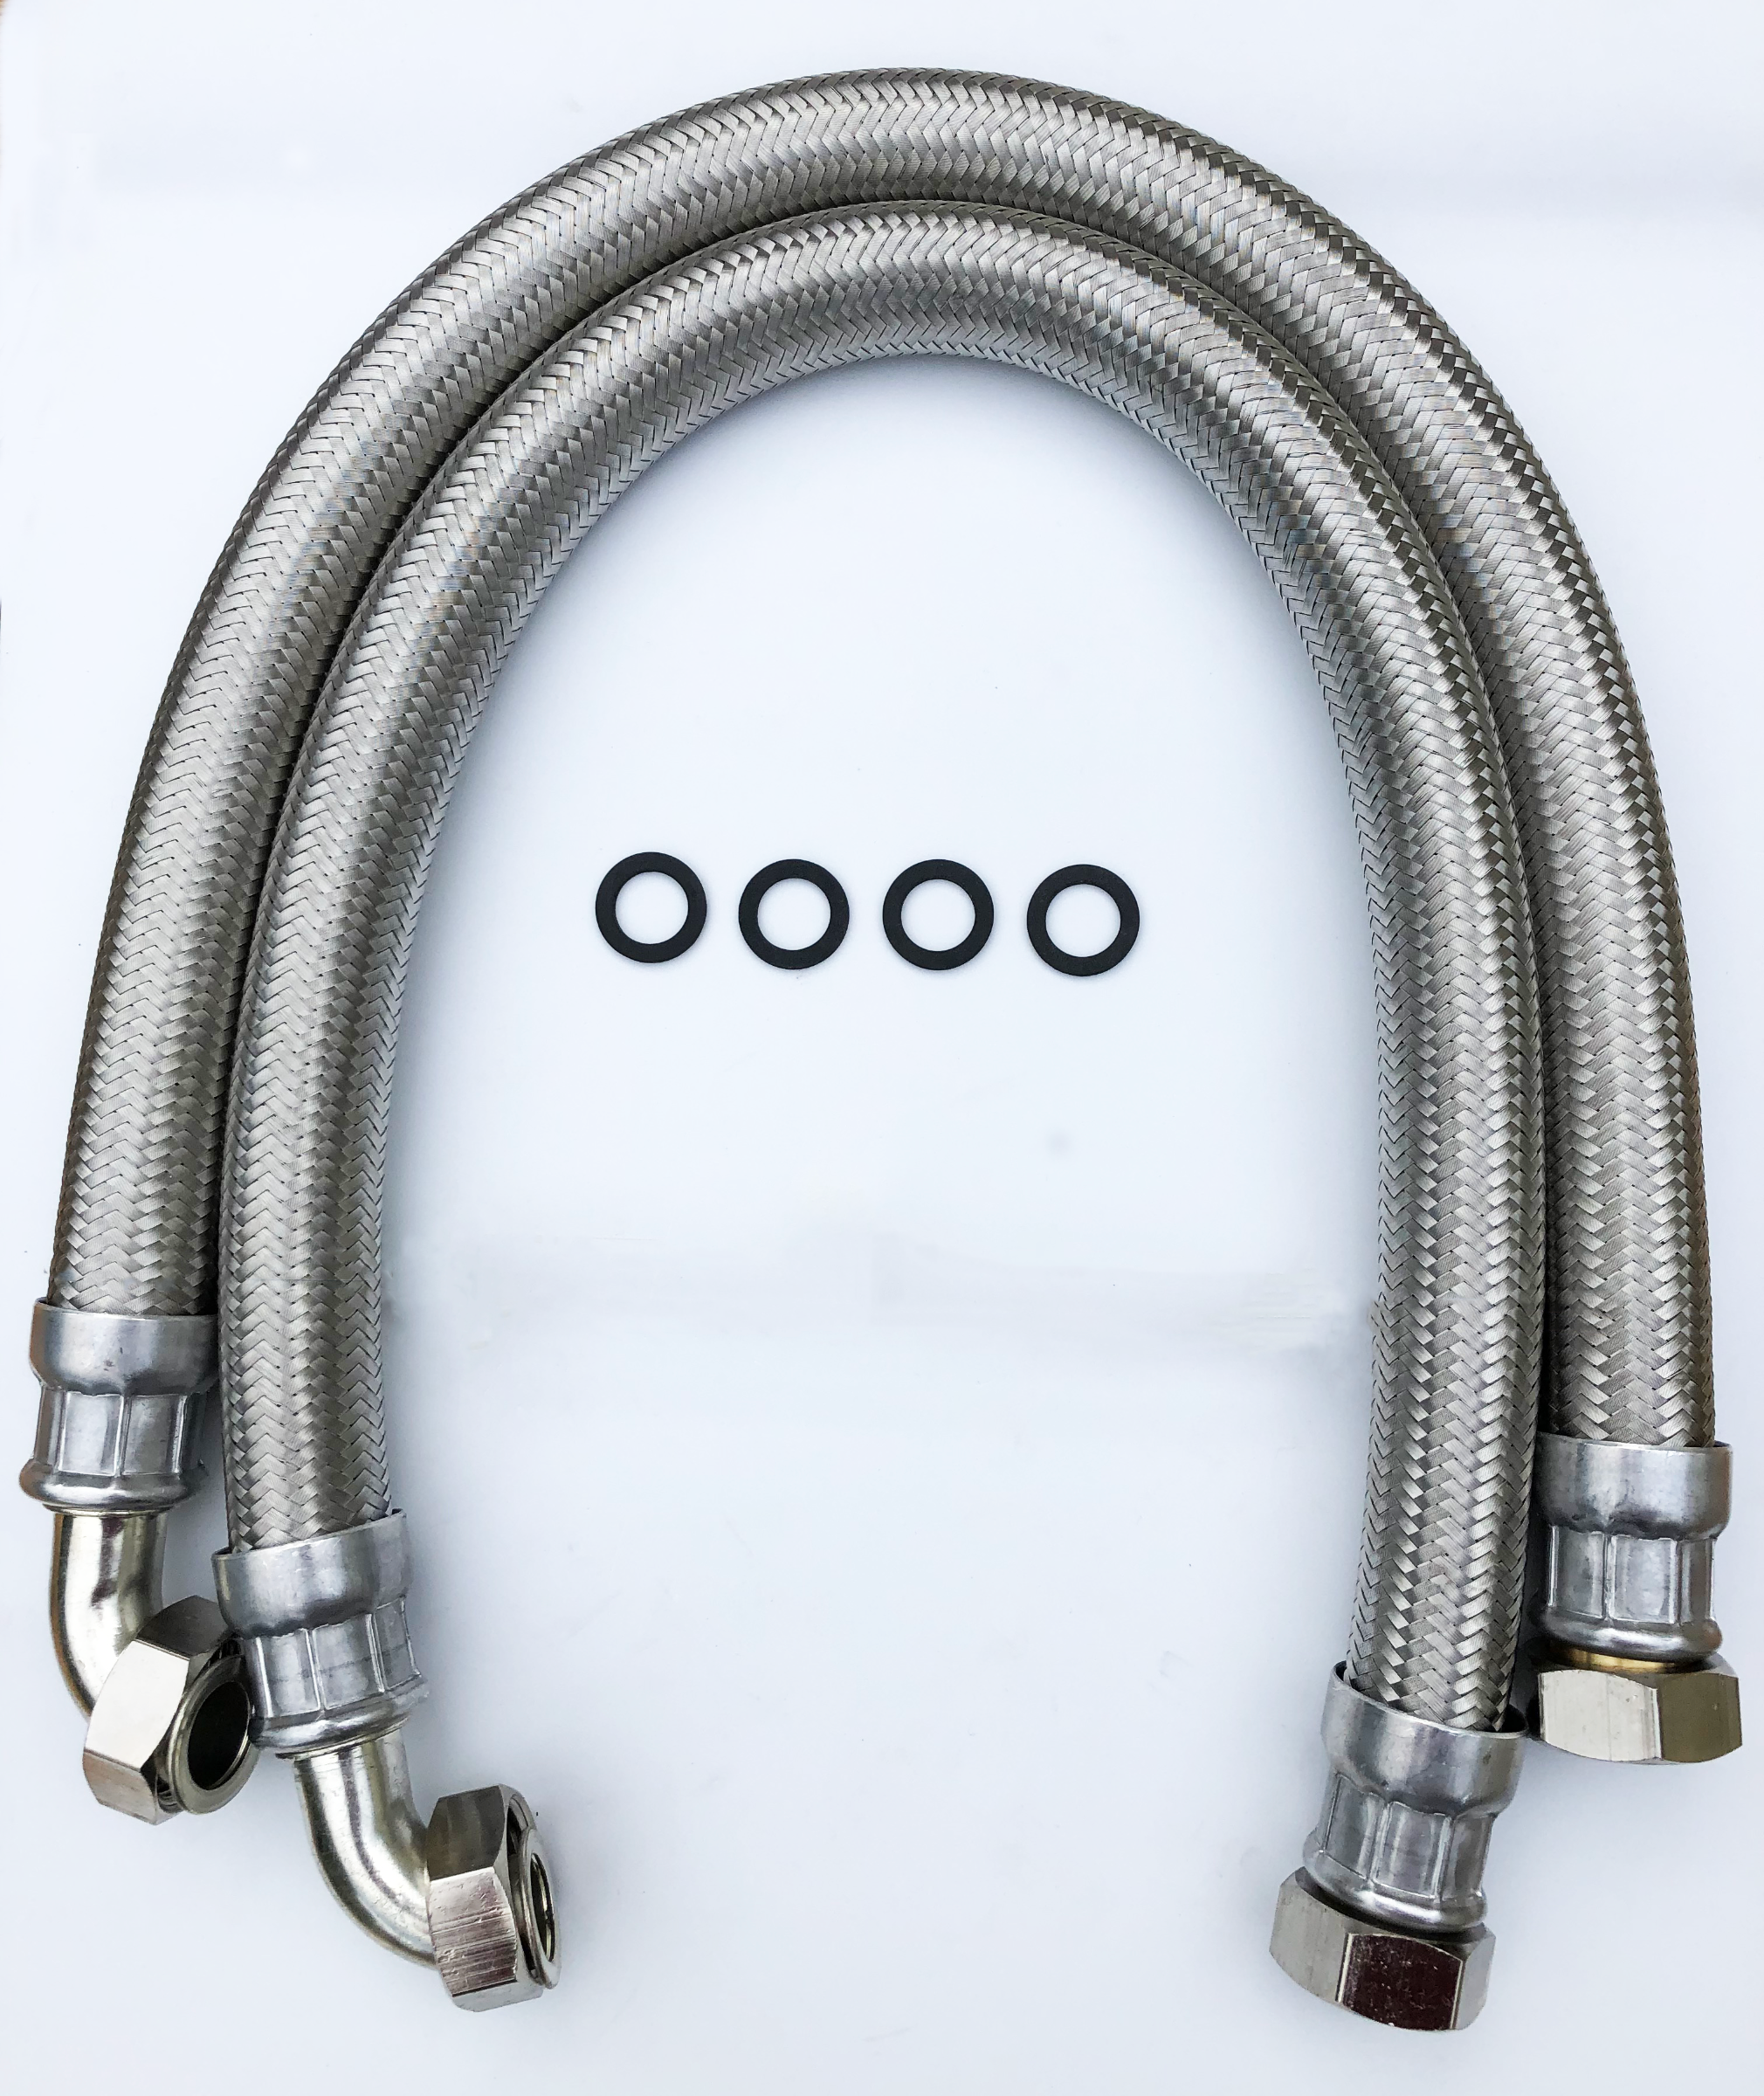 28mm Stainless Steel Hoses, 800mm long Pair